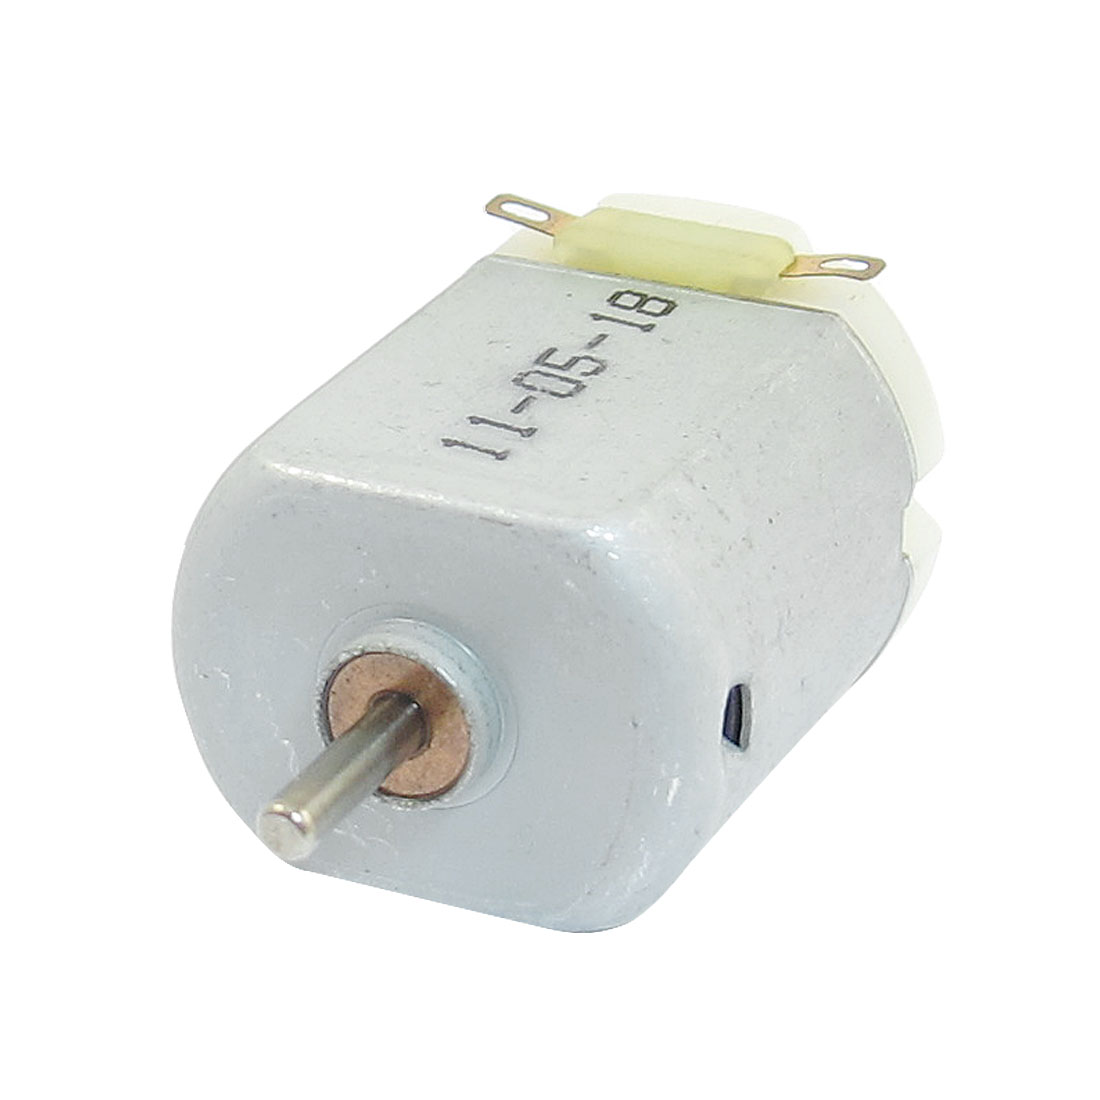 3-6V-6300-23000RPM-2-Pin-Connector-Permanent-Magnet-Micro-DC-Motor